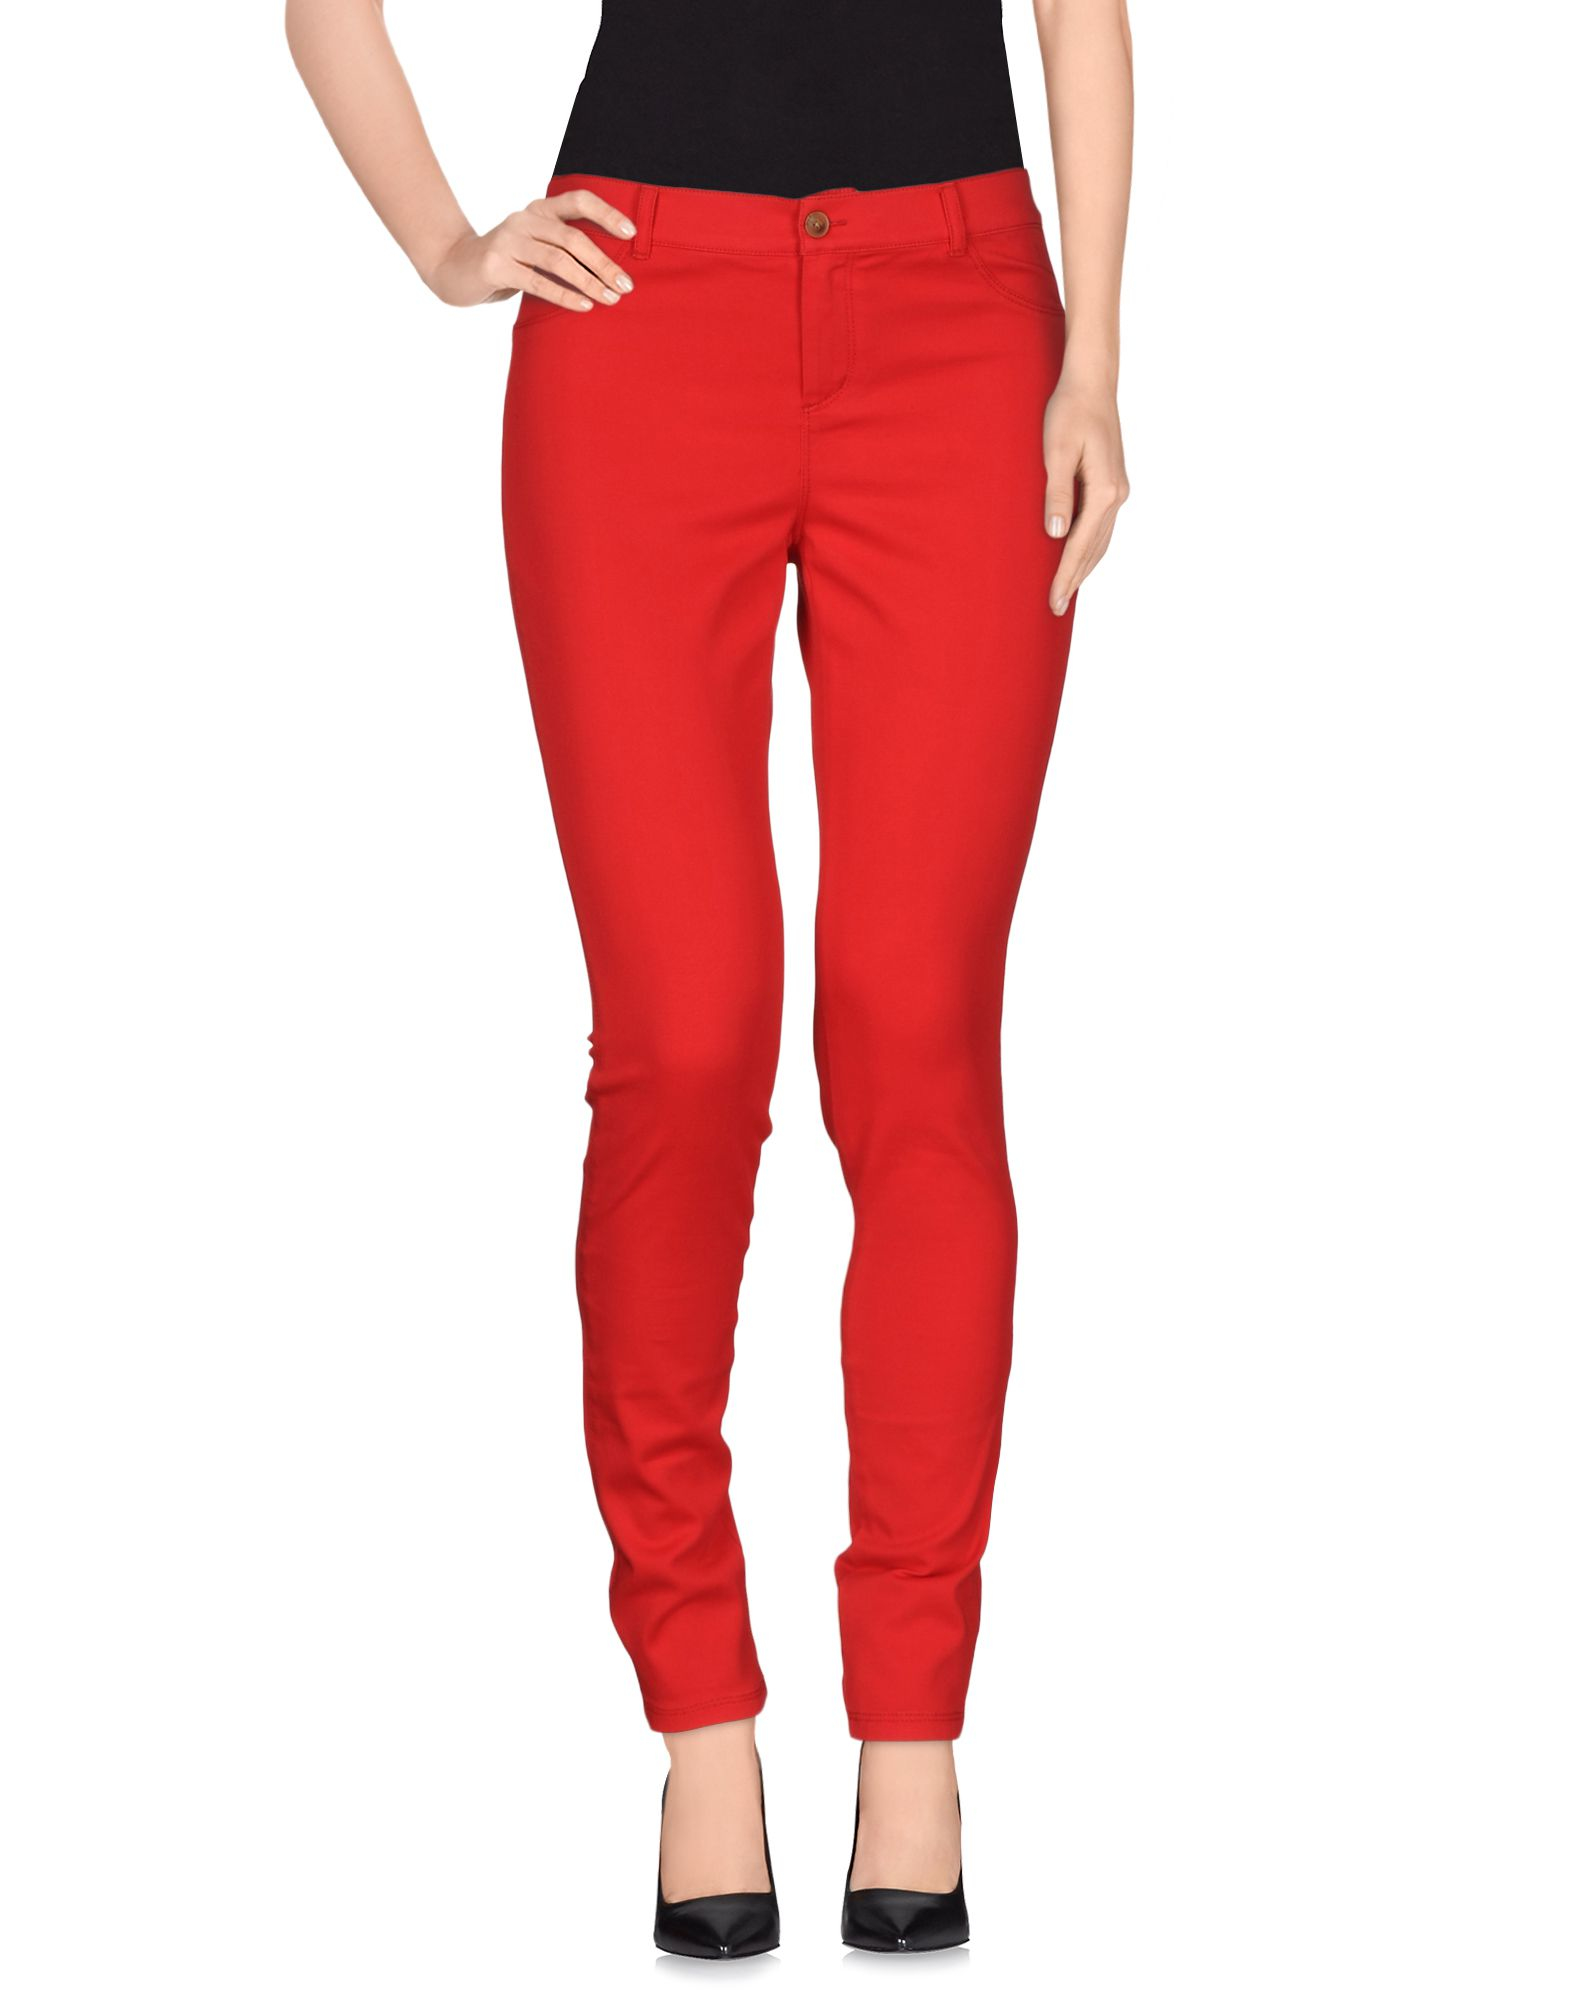 women s red casual pants photo - 1